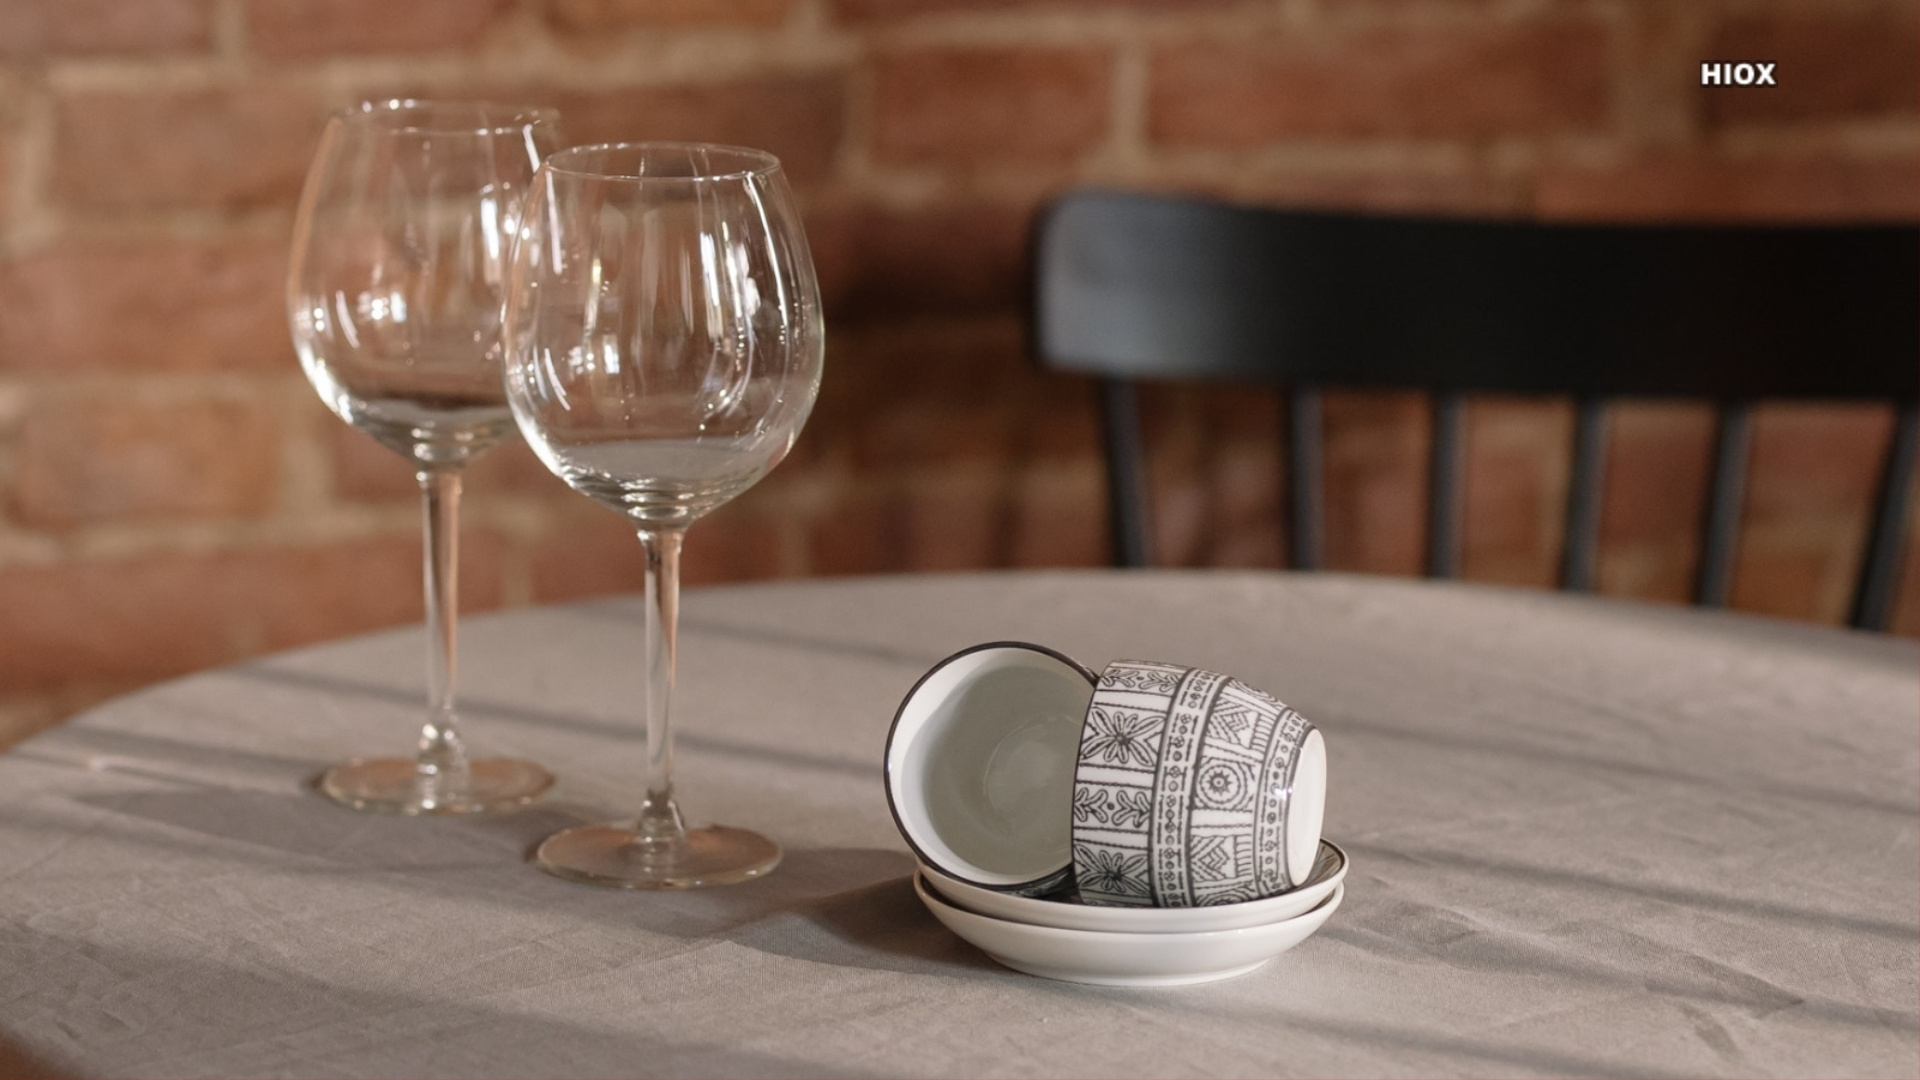 Empty Wine Glasses And Tea Cups On Restaurant Table Hd Wallpaper